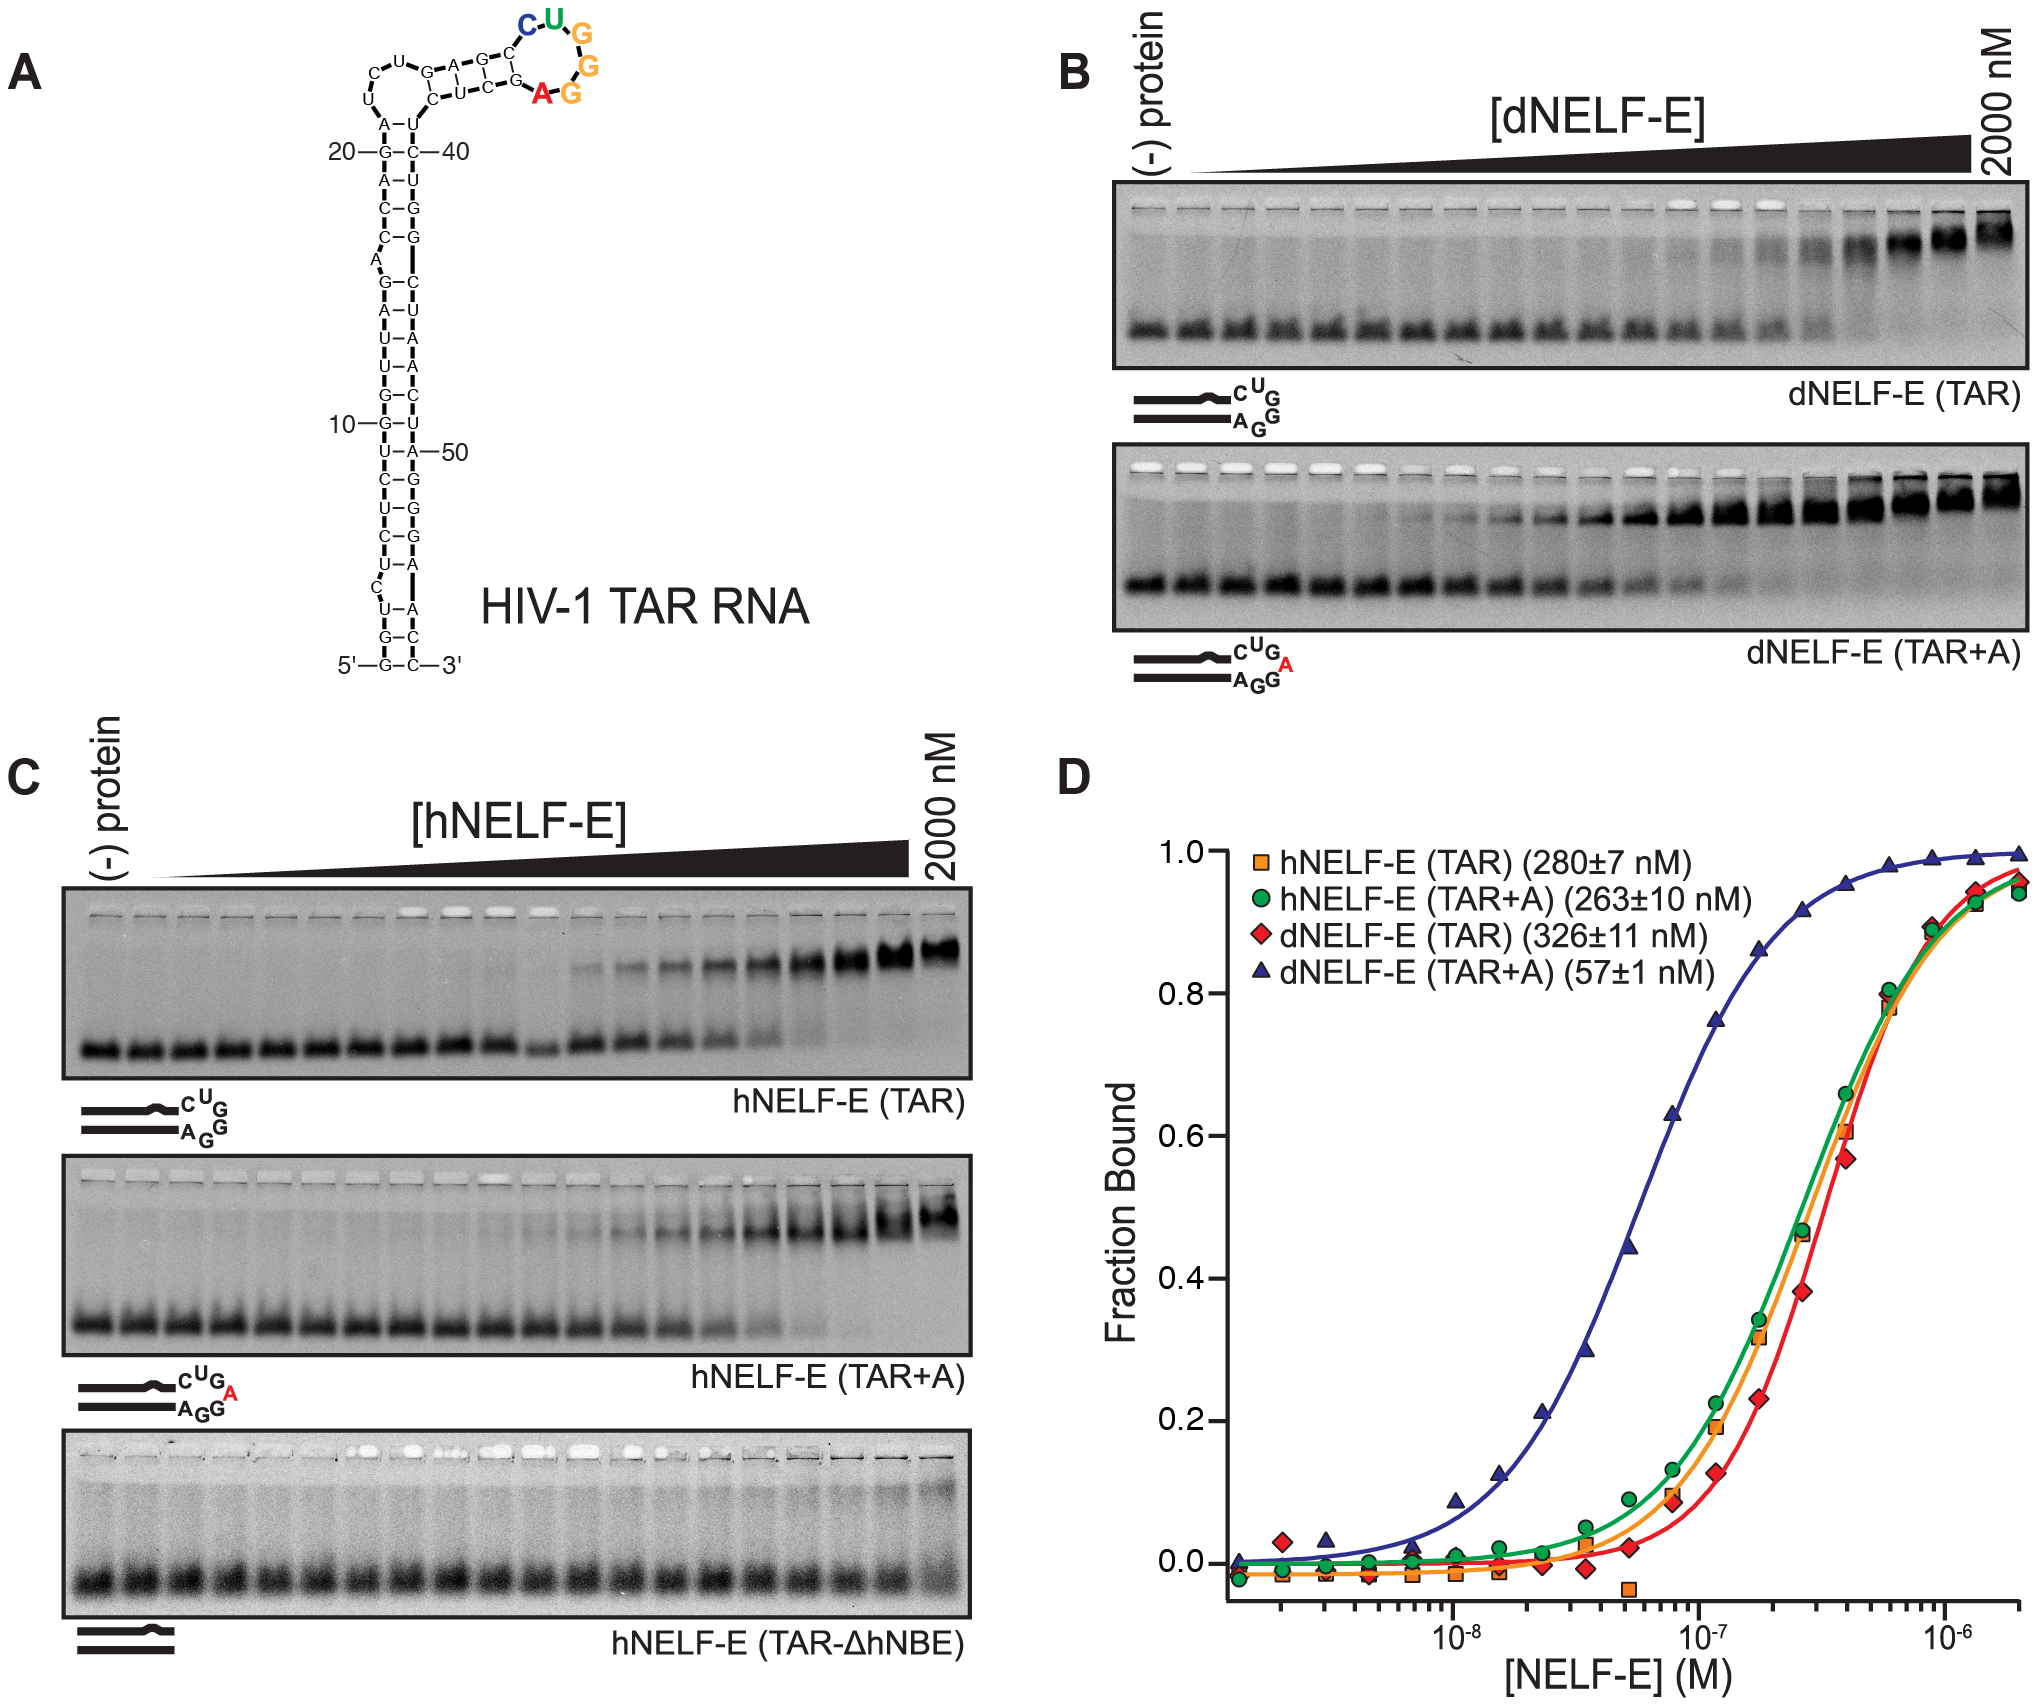 Human and <i>Drosophila</i> NELF-E bind specifically to HIV-1 TAR RNA.